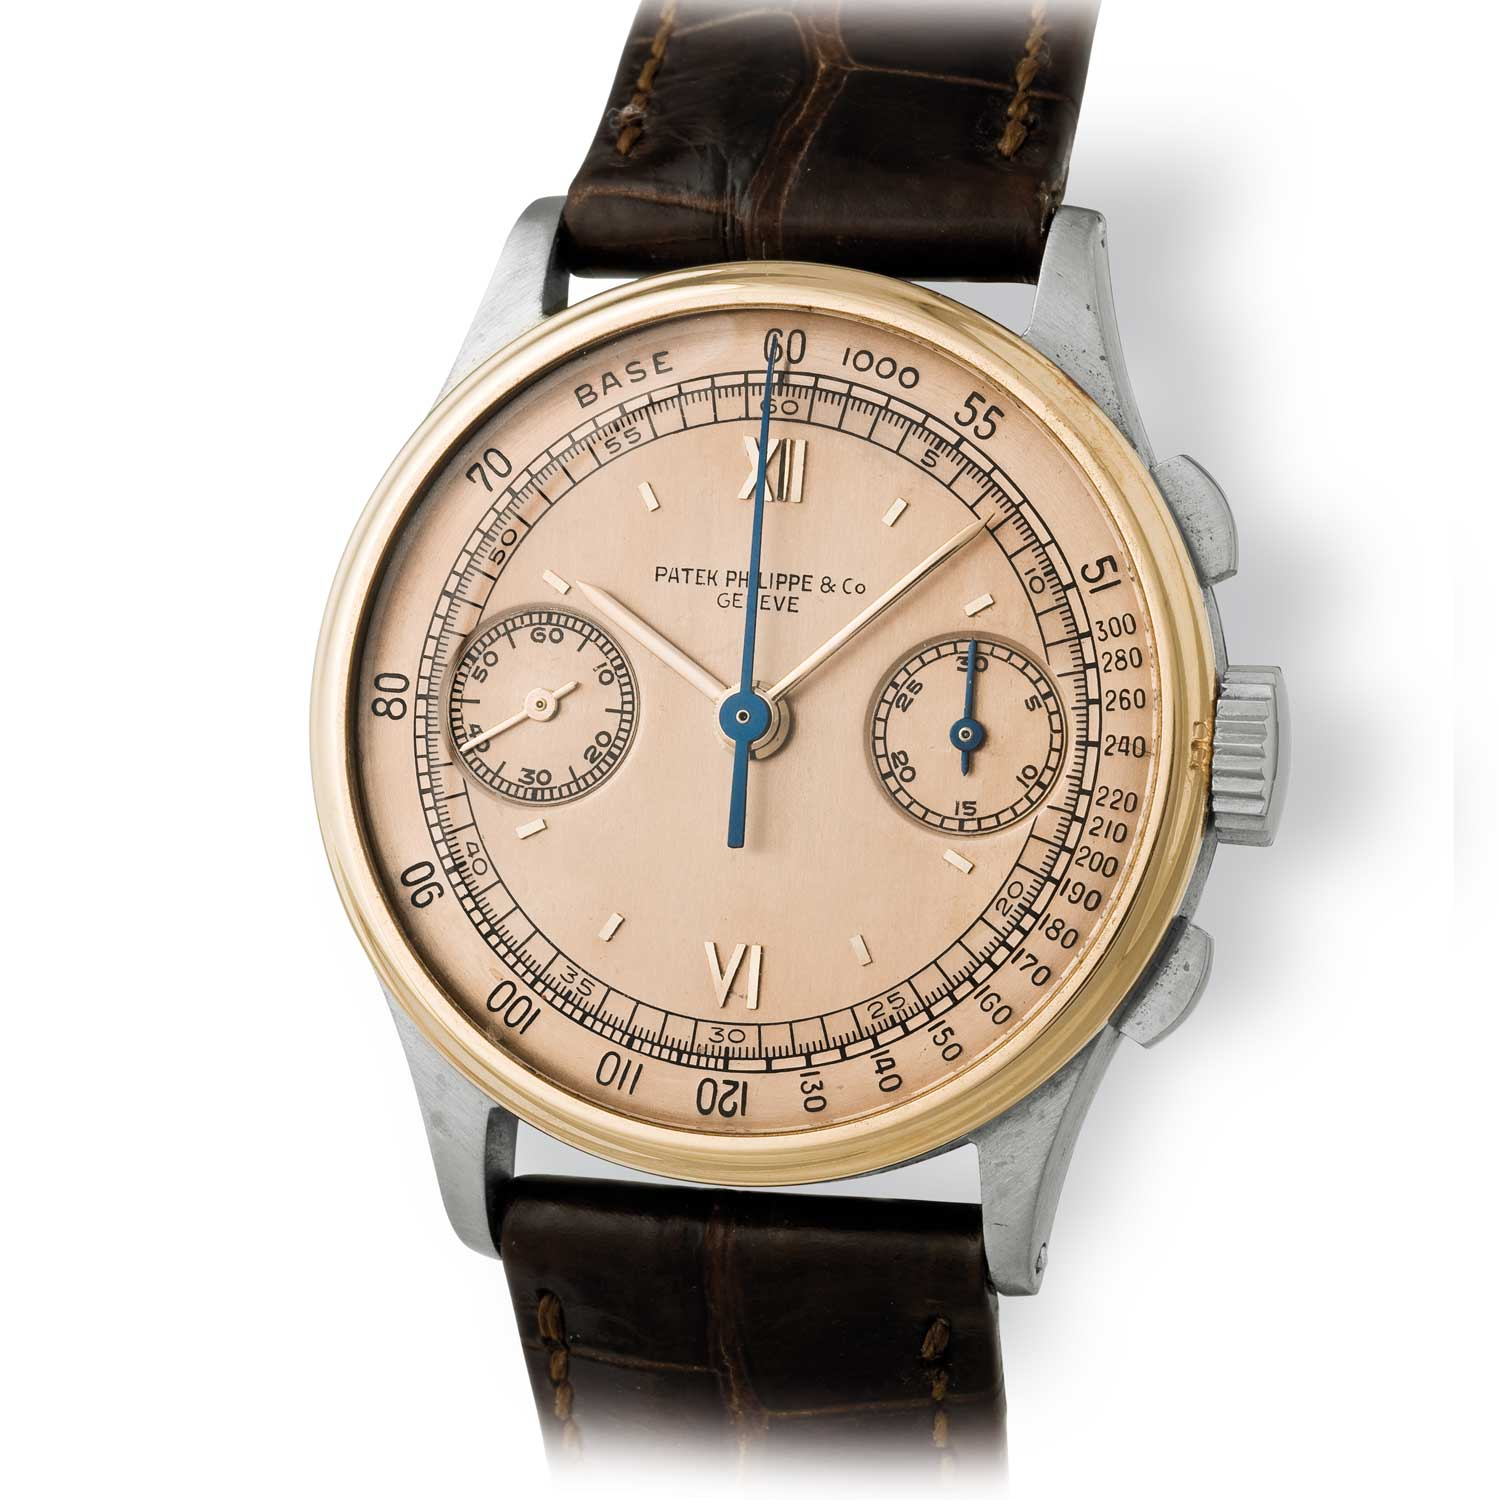 Patek Philippe ref. 130 steel and gold chronograph with a gold dial and a mix of Roman and baton markets (Image: John Goldberger)